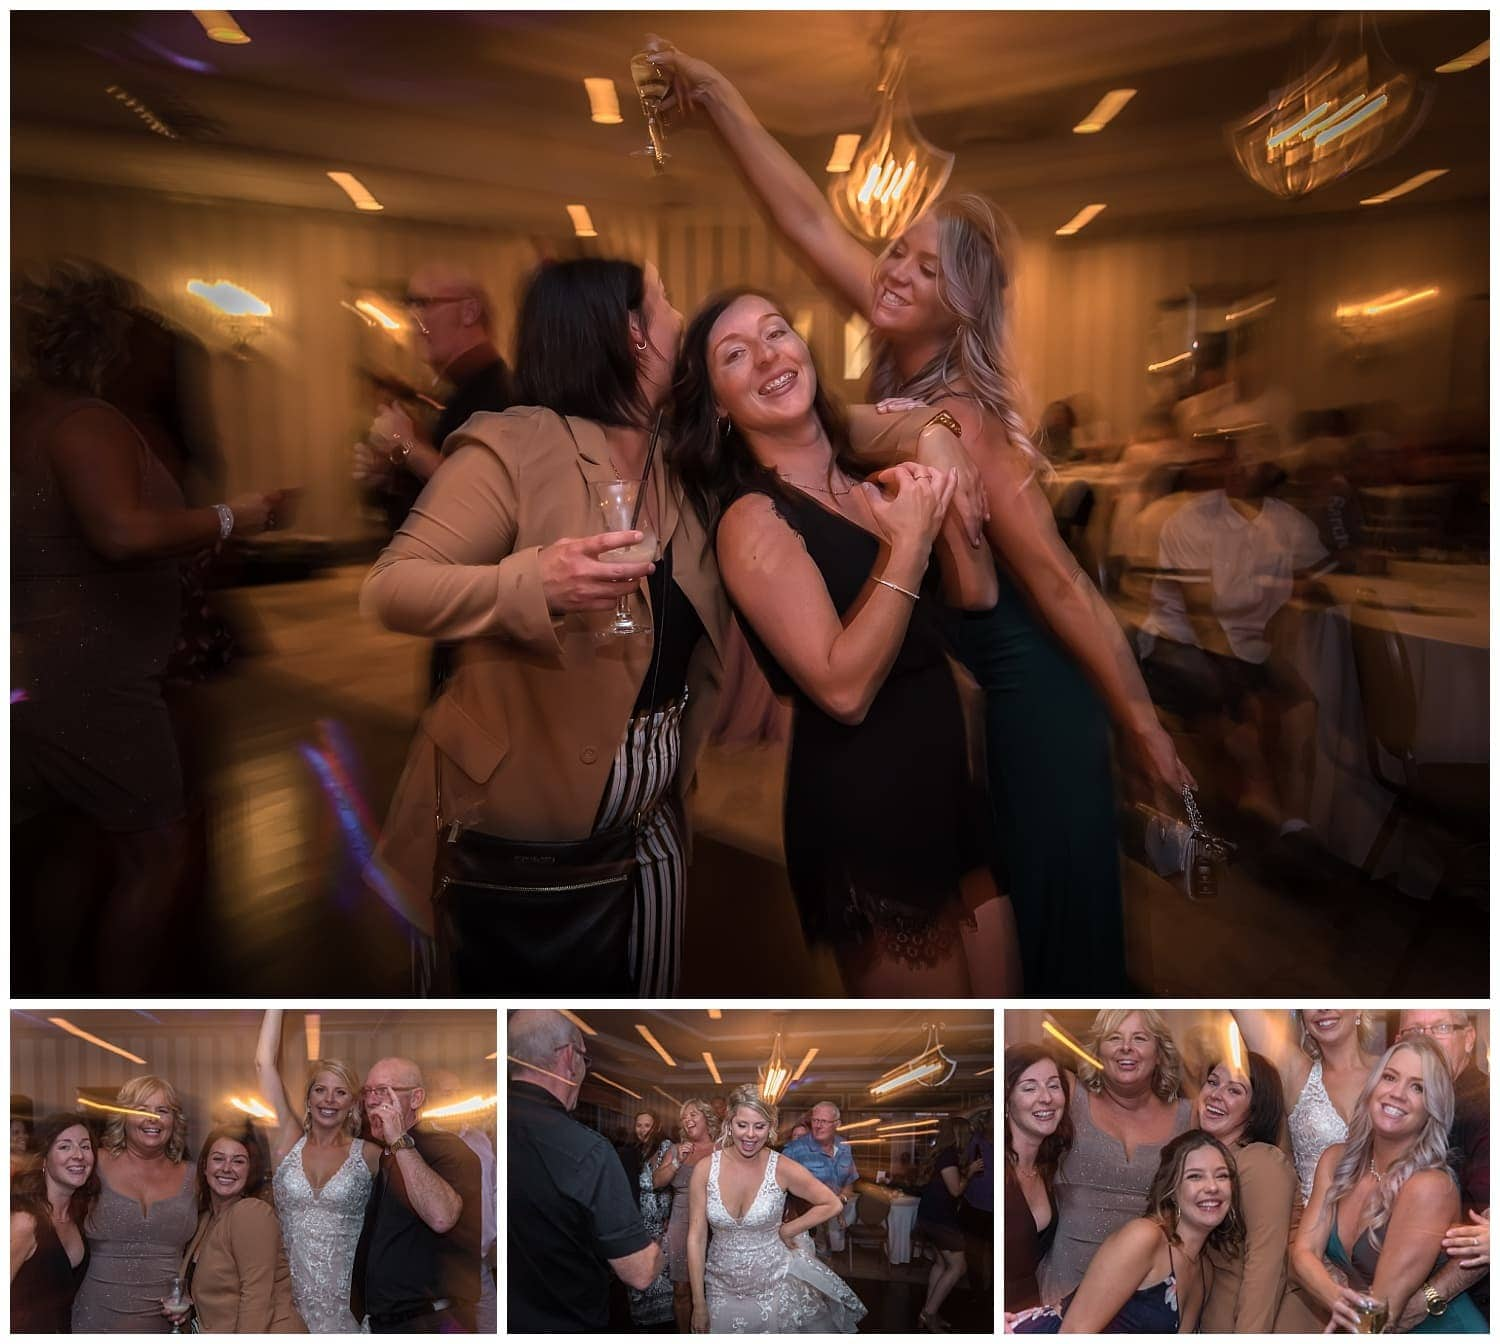 Wedding guests dancing with the bride during her wedding reception at the Ashburn golf club.